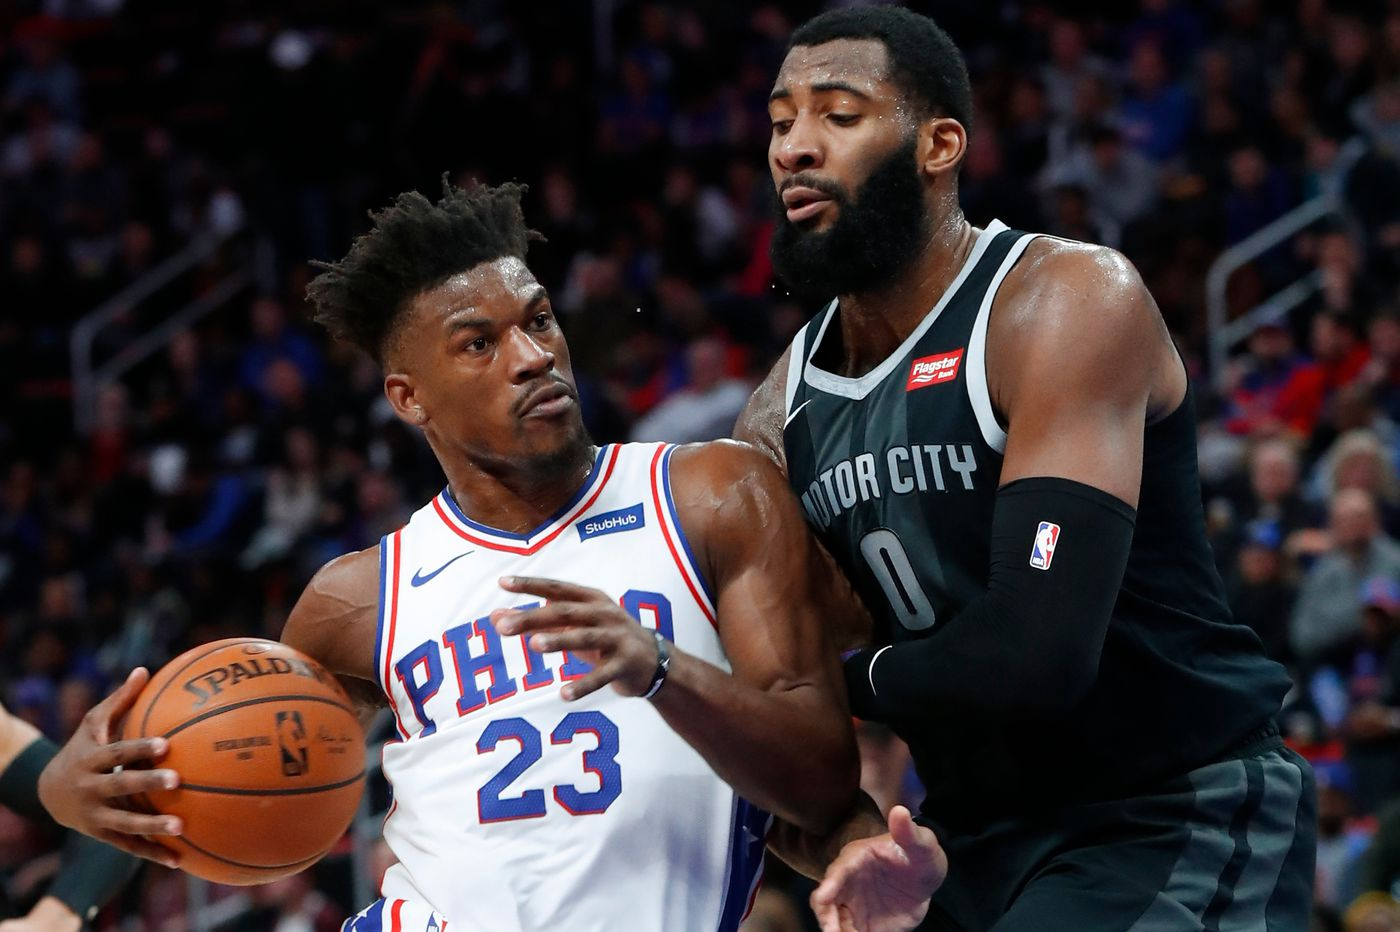 f1e55982cfb0 Jimmy Butler shines as Sixers beat the Pistons without Joel Embiid